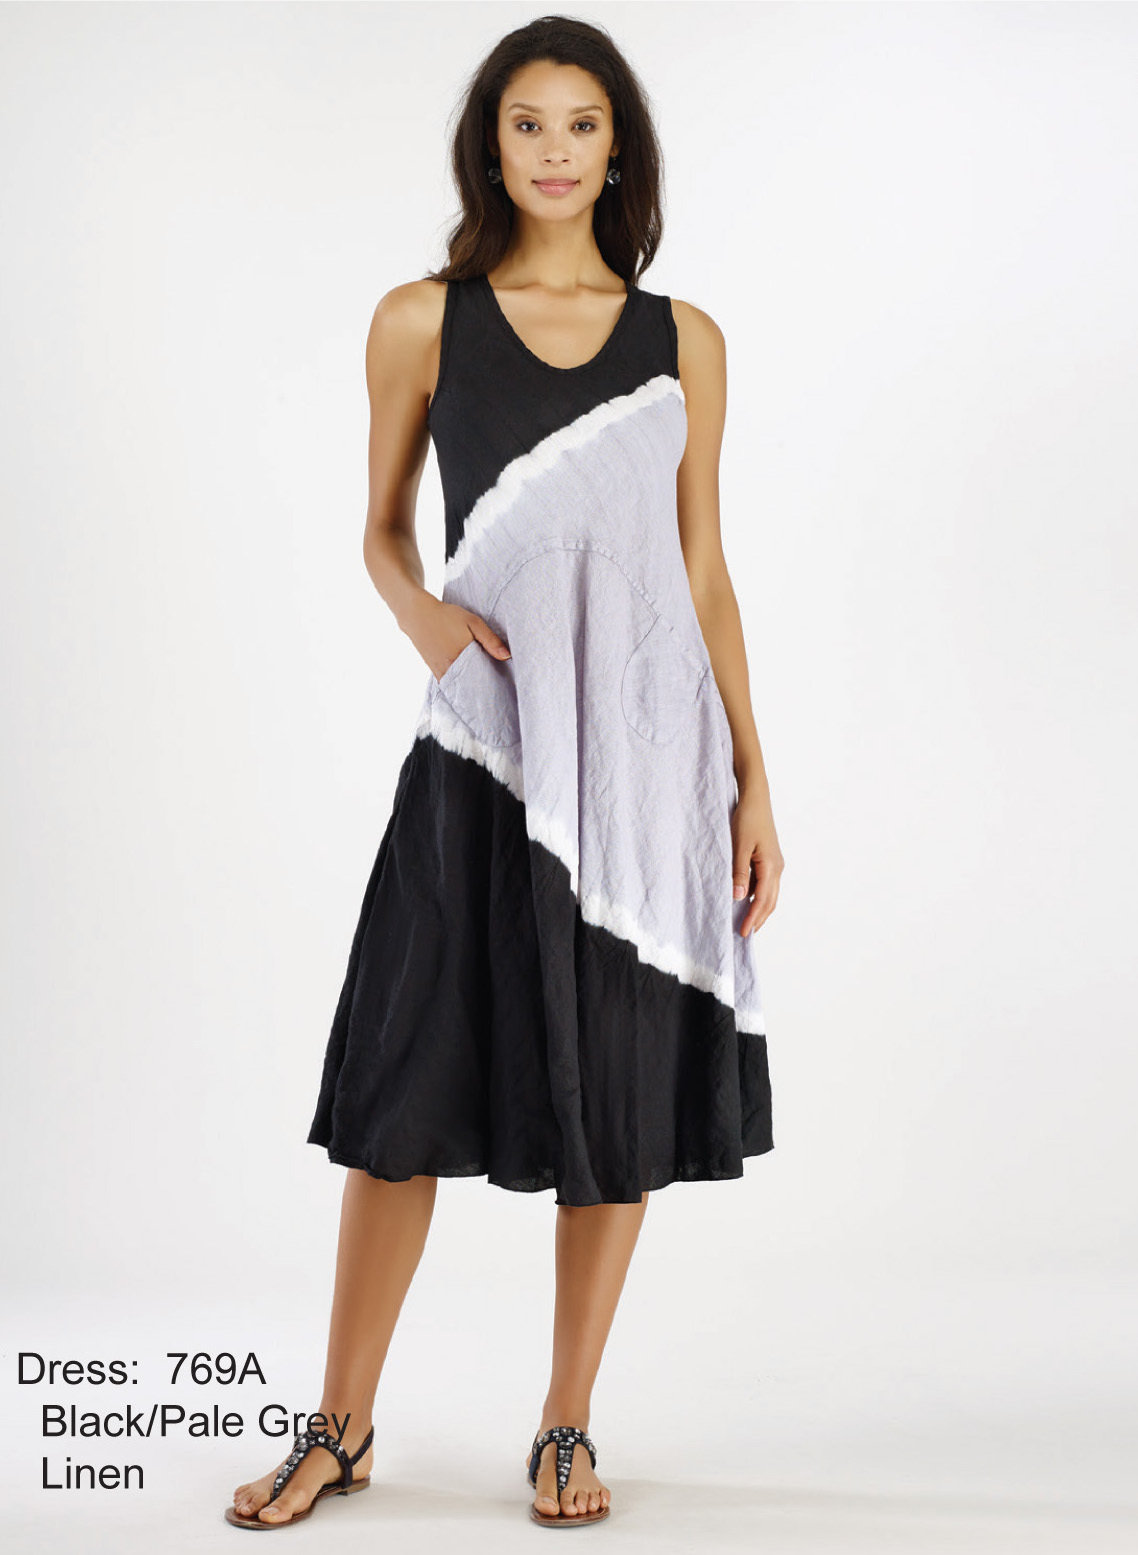 Luna Luz: Linen Gauze Tri-Dye Asymmetrical Pocket Dress (Ships Immed, 1 Left!) LL_769A_N1